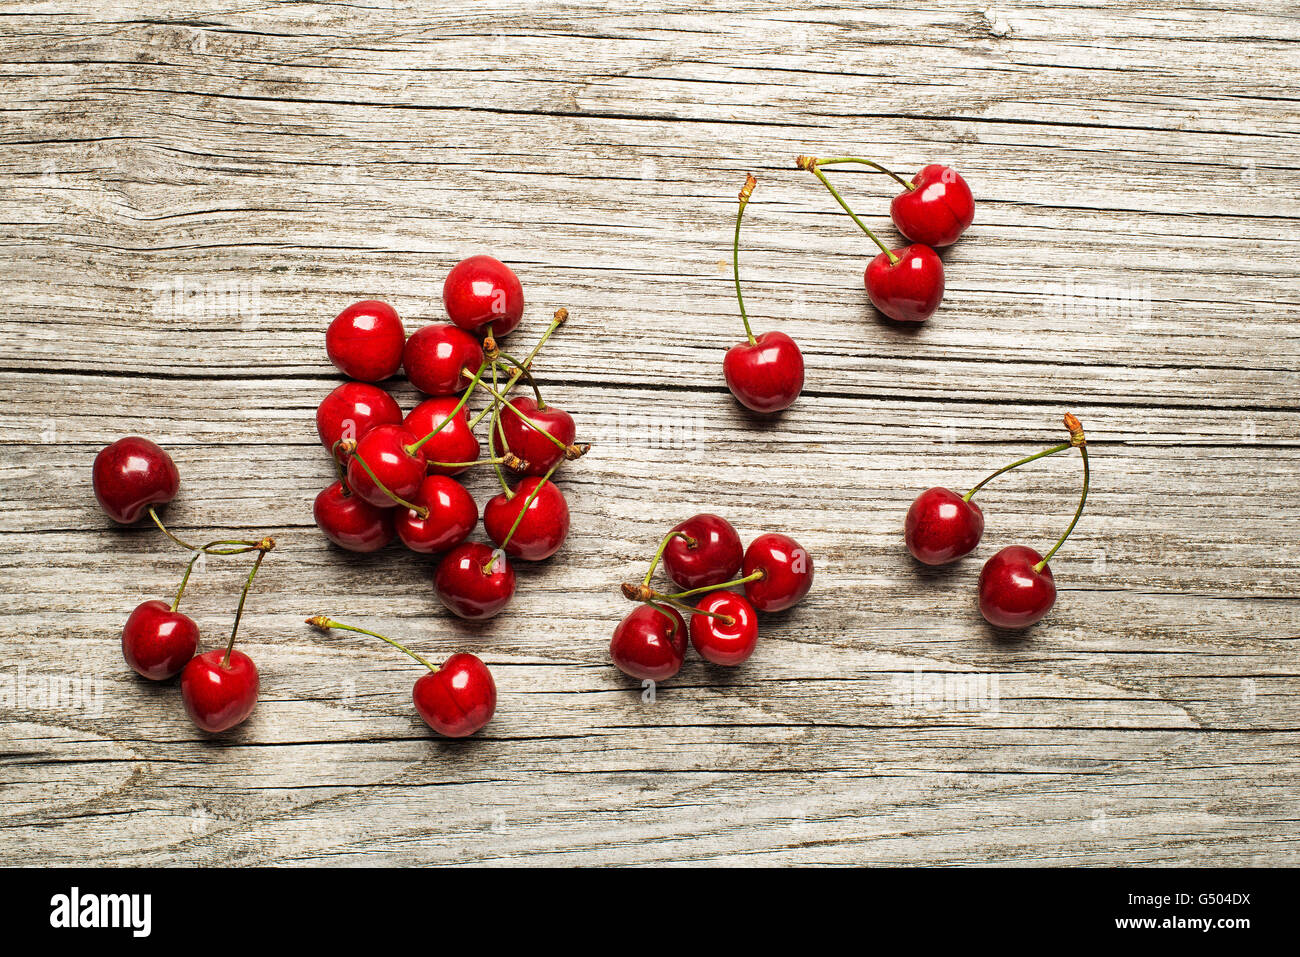 Fresh cherries on wooden table close up. - Stock Image